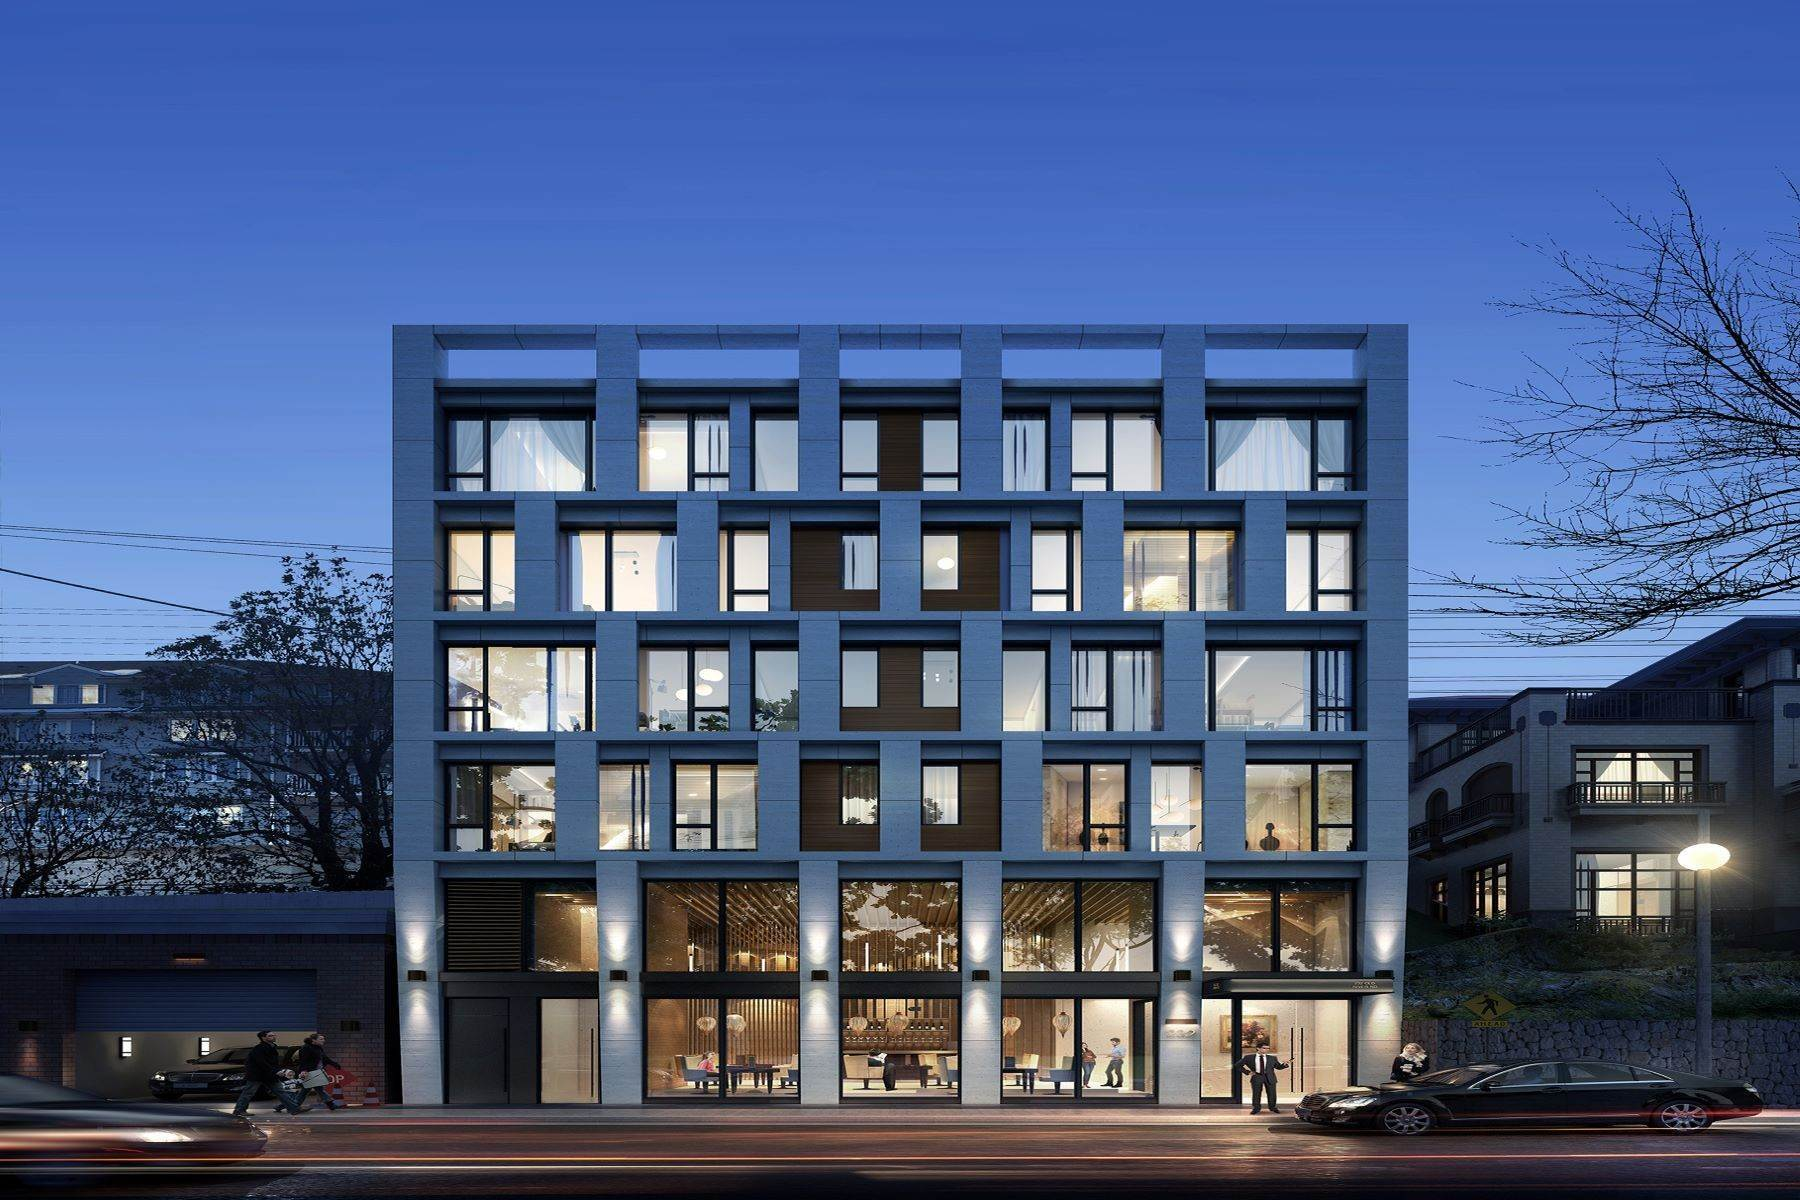 Condominiums for Sale at NEW CONSTRUCTION BUILDING! HOW ABOUT TO OWN A BOUTIQUE BUILDING. 232 Old River Road Edgewater, New Jersey 07020 United States